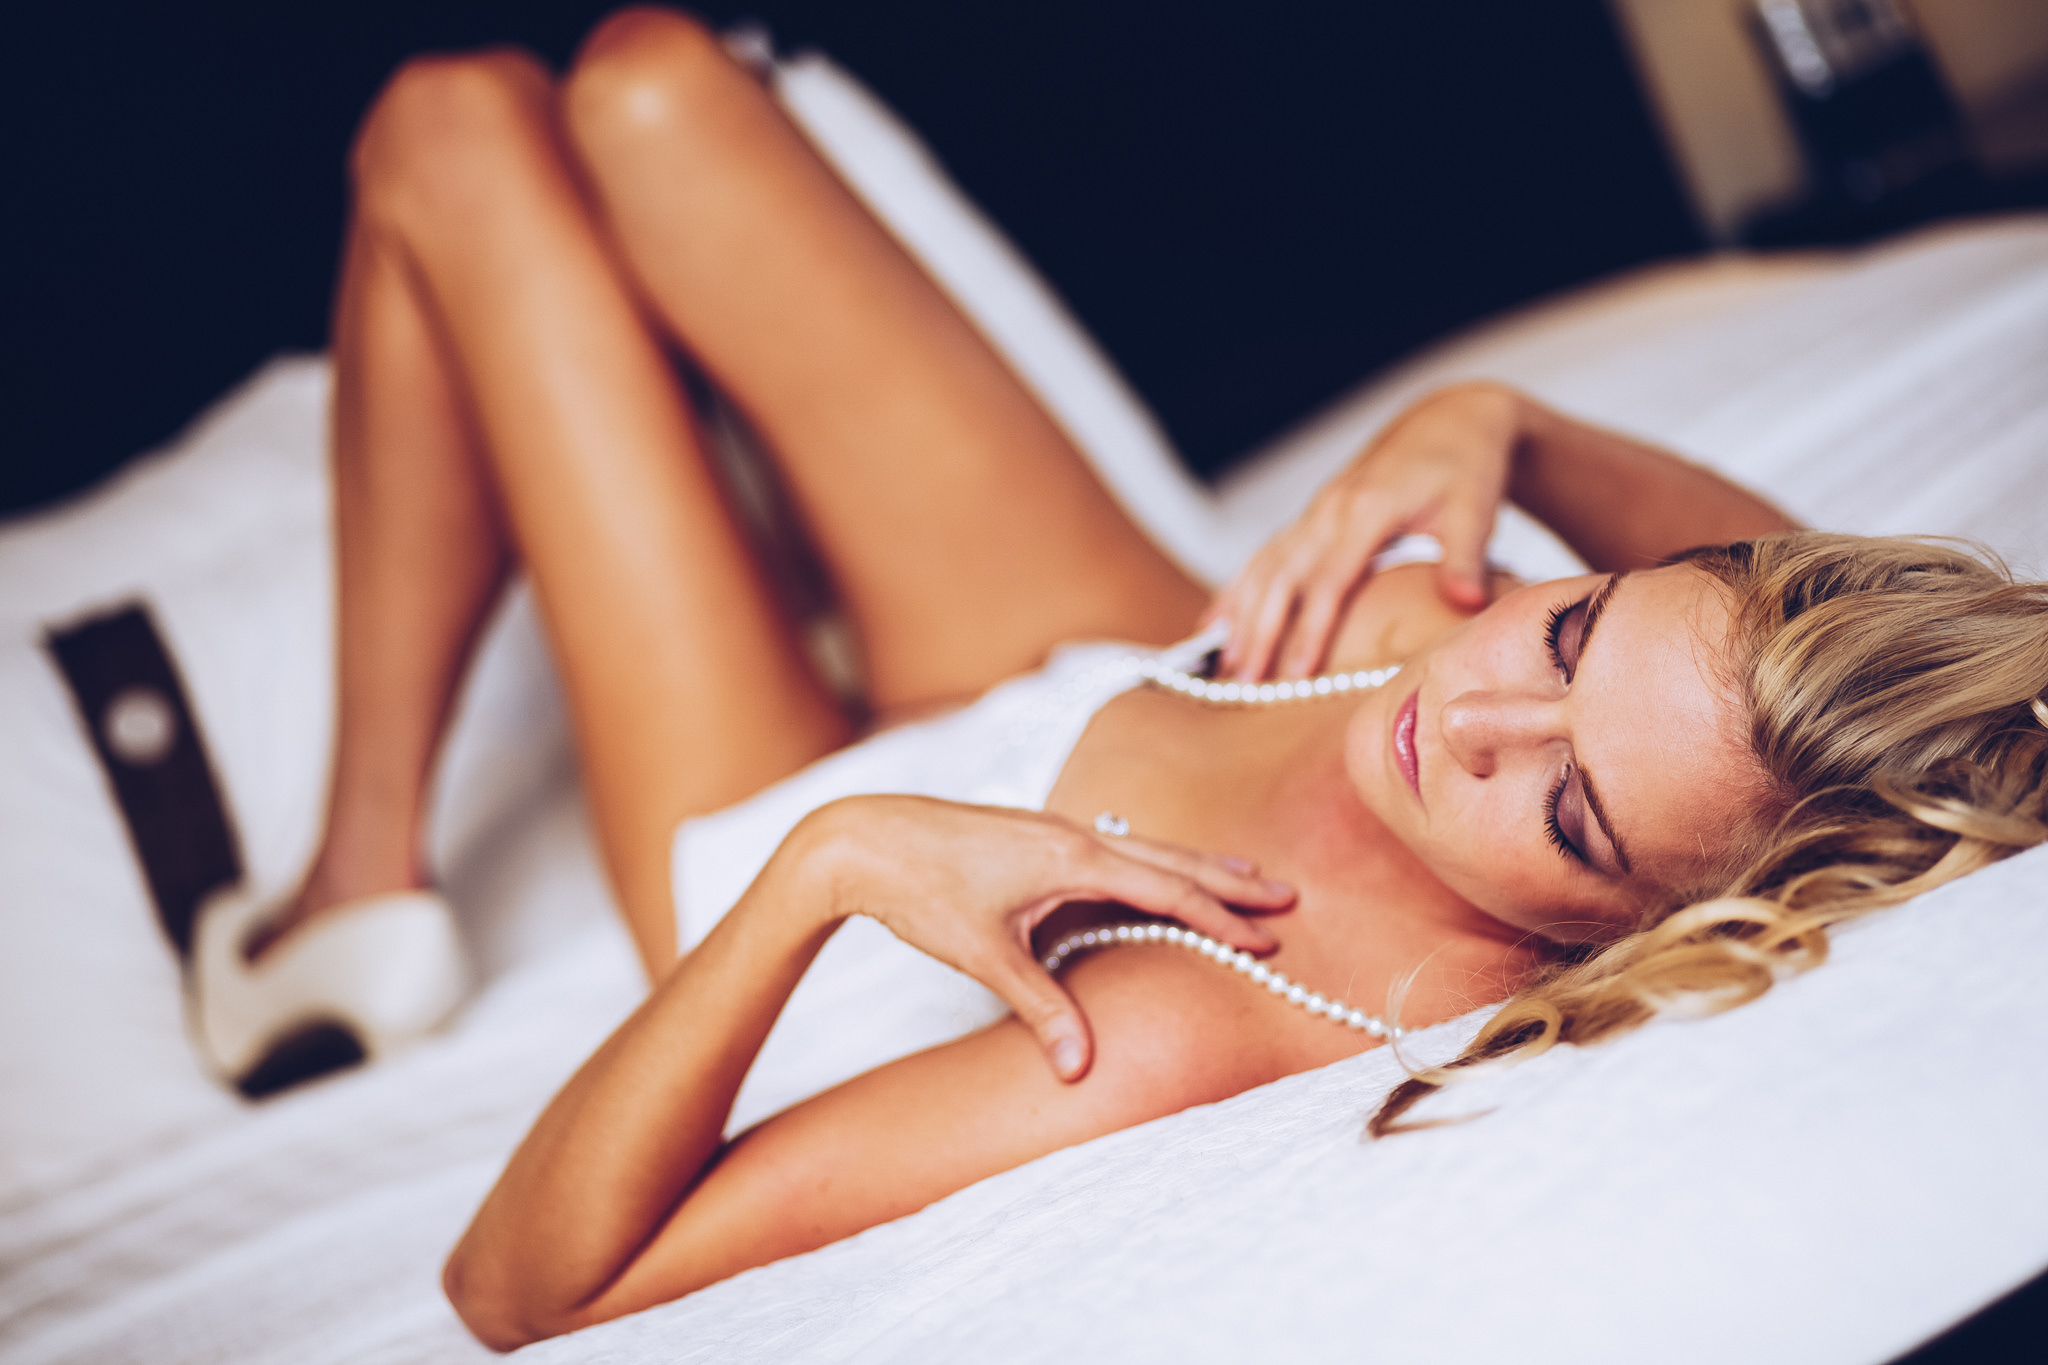 virginia-beach-boudoir-portrait-photograph-tanya.jpg